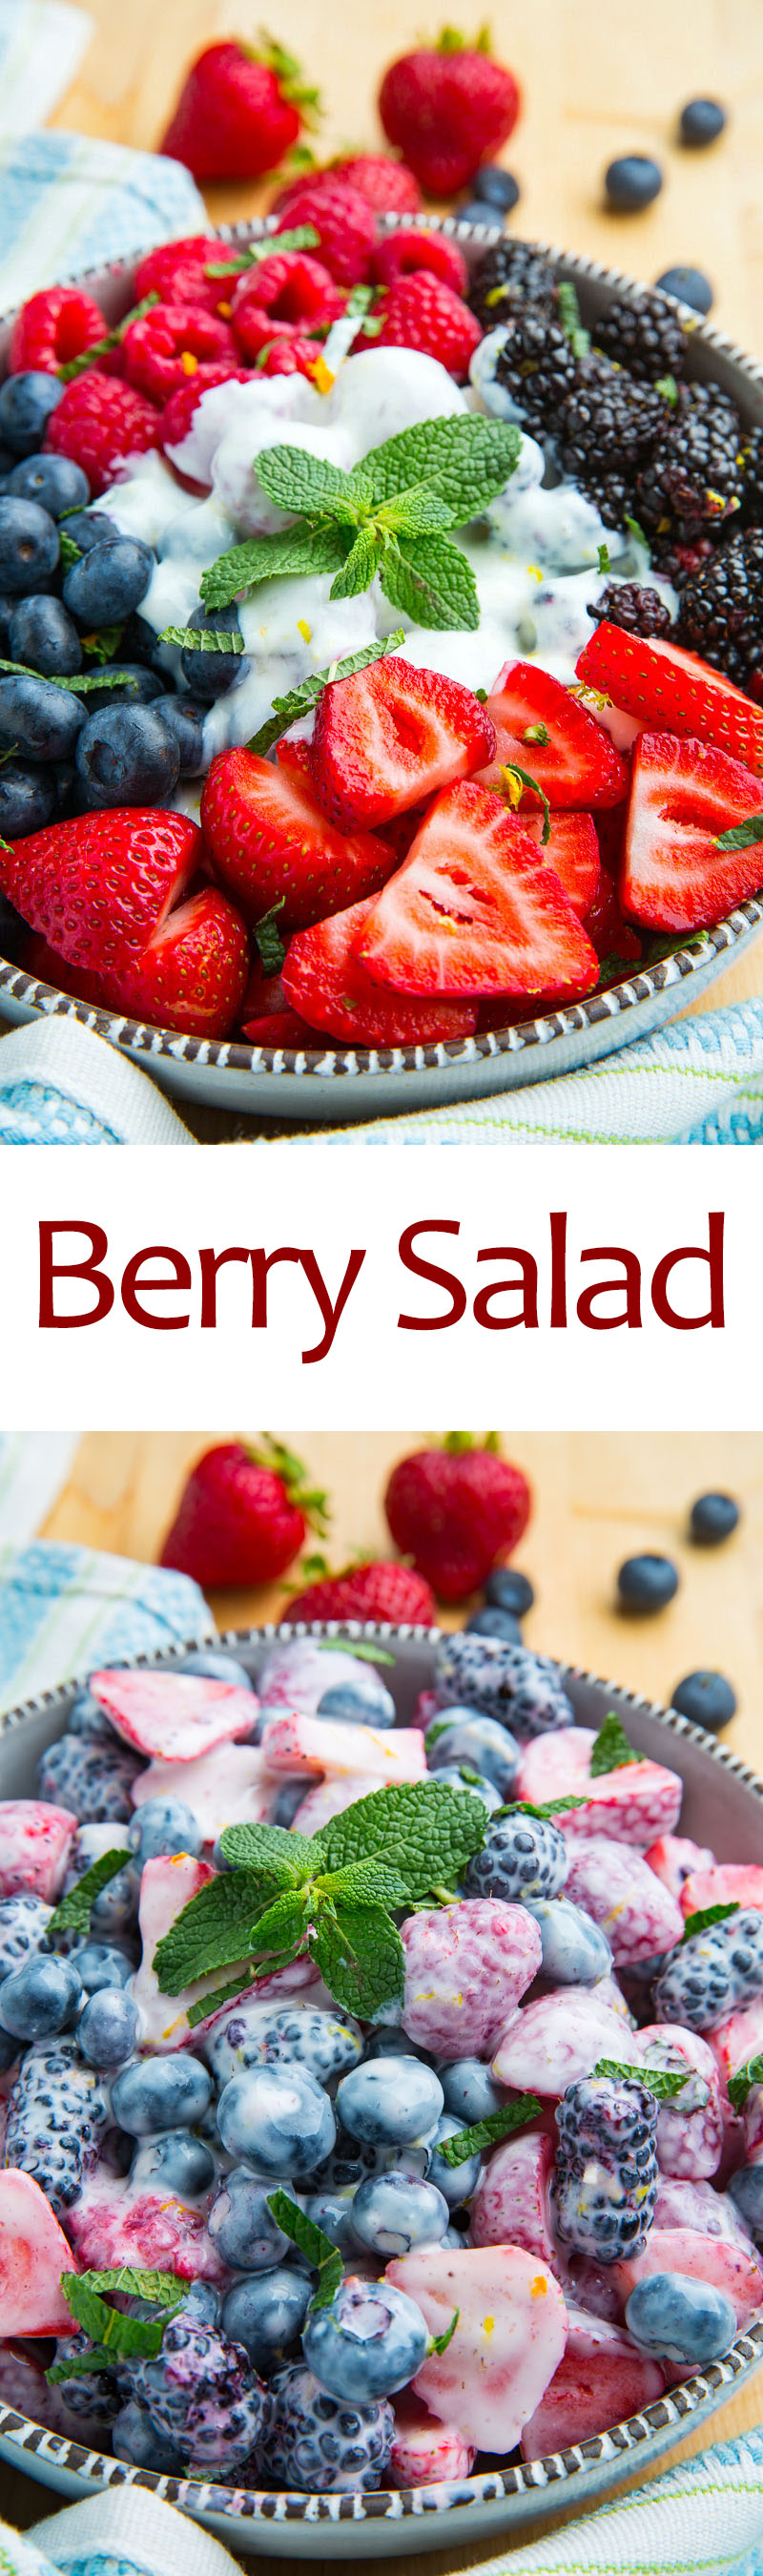 Berry Salad with Honey and Lemon Yogurt Dressing